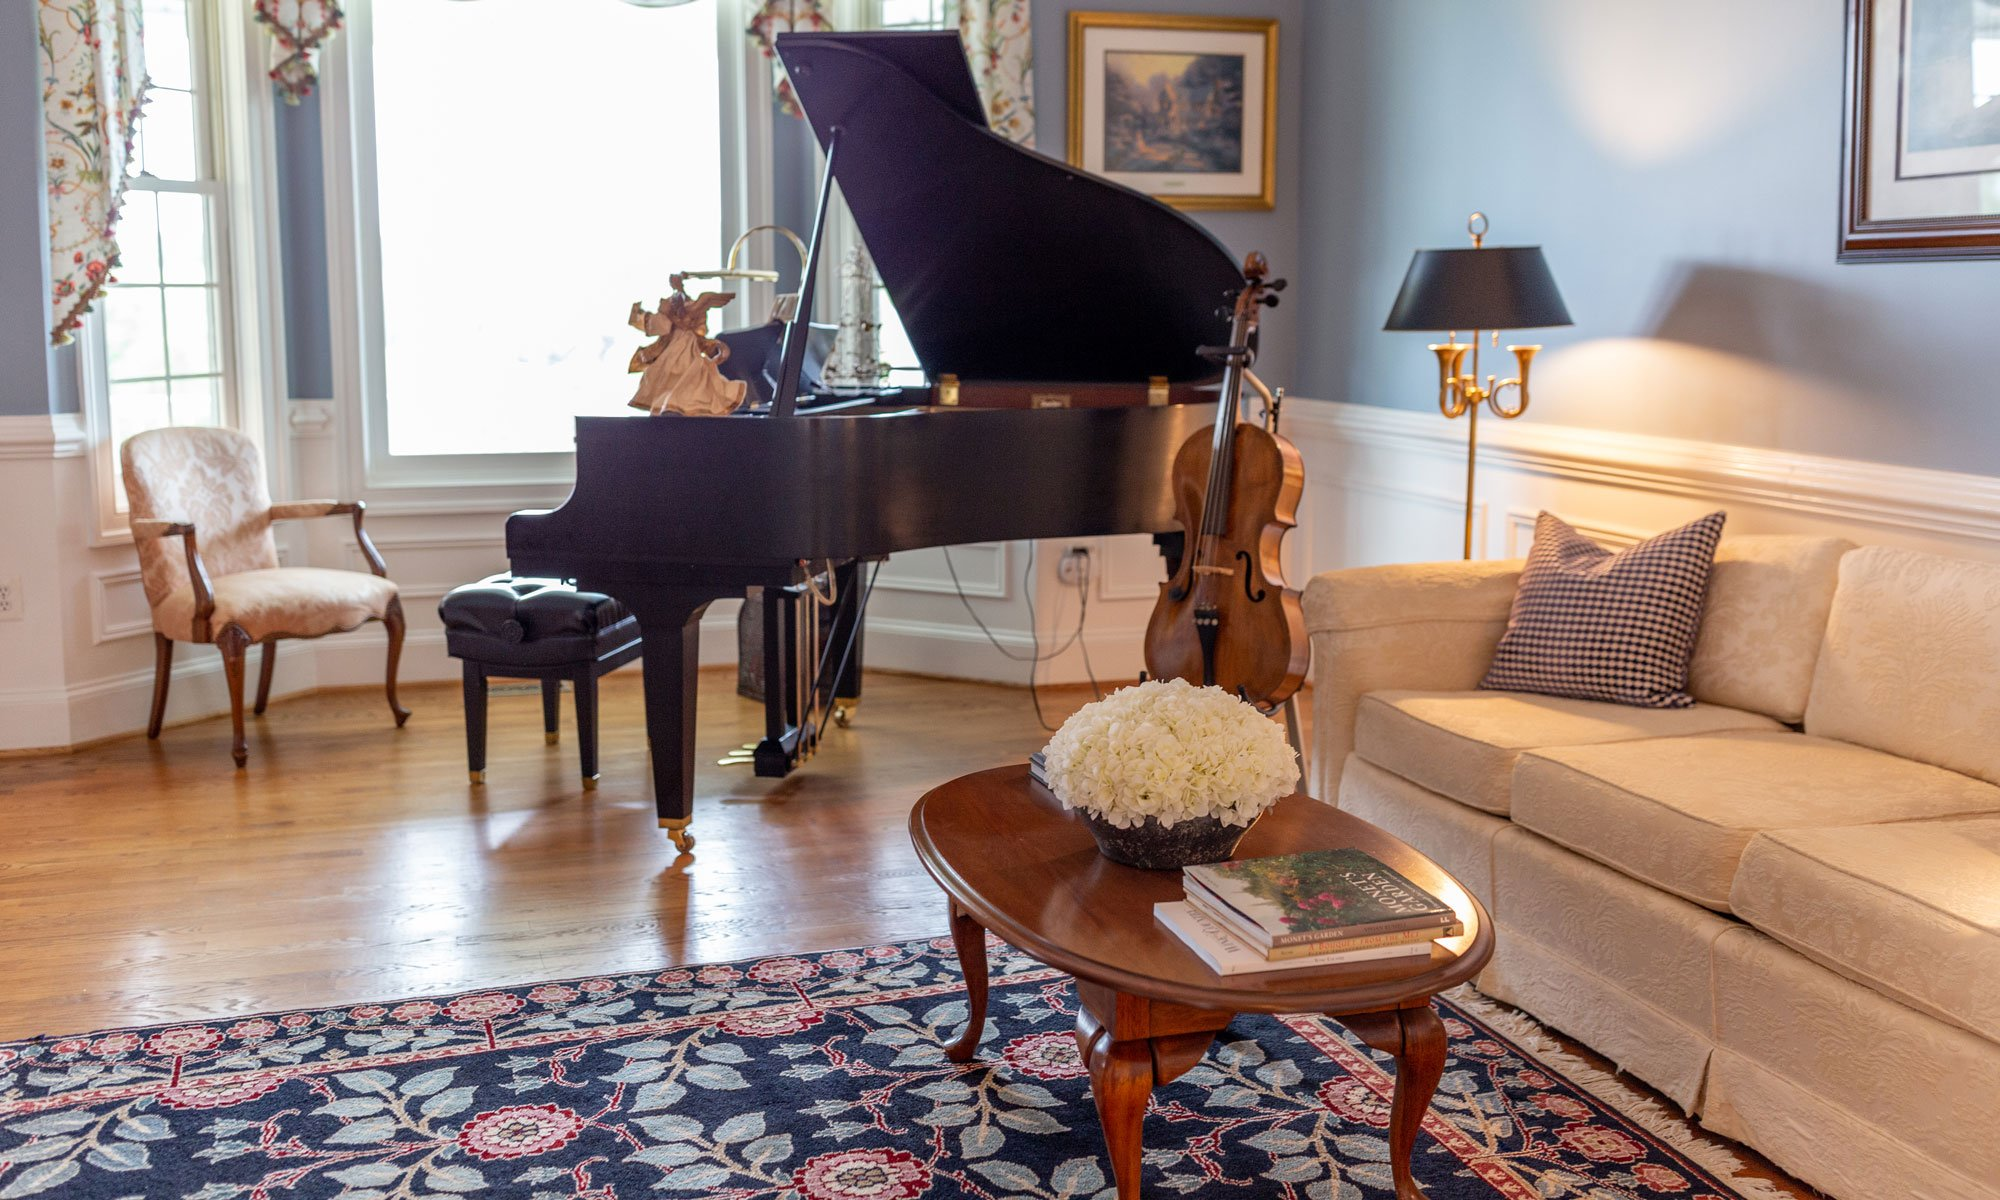 Living Room with Piano and Couches